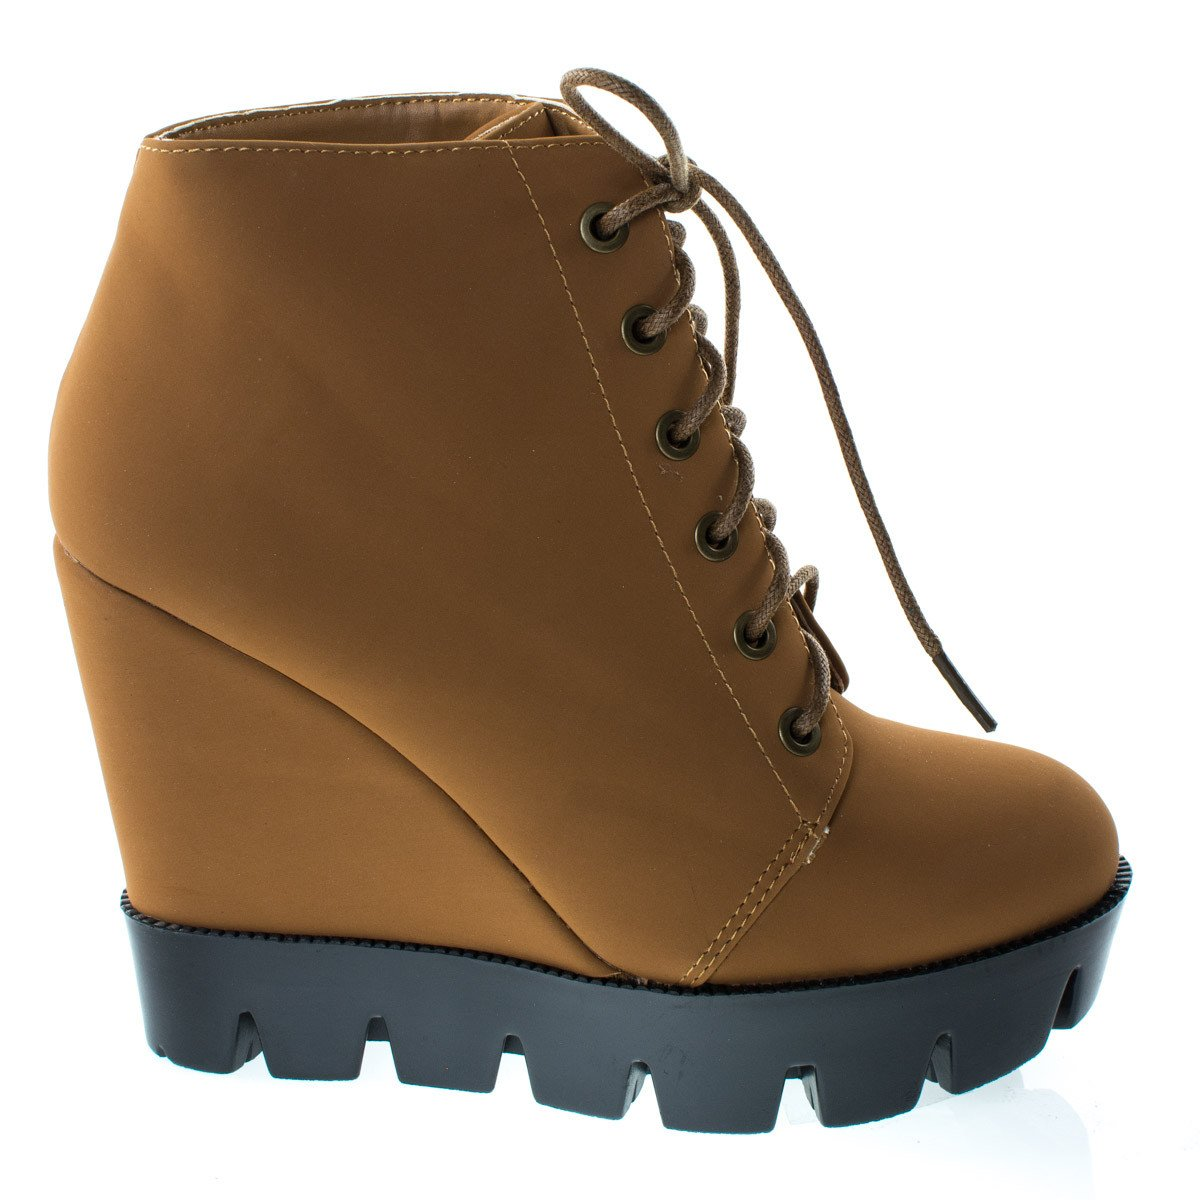 #Tense10 by Bamboo, Black Women Faux Fur Lining Combat Ankle Boots, Hidden Wedge Lug Threaded Sole